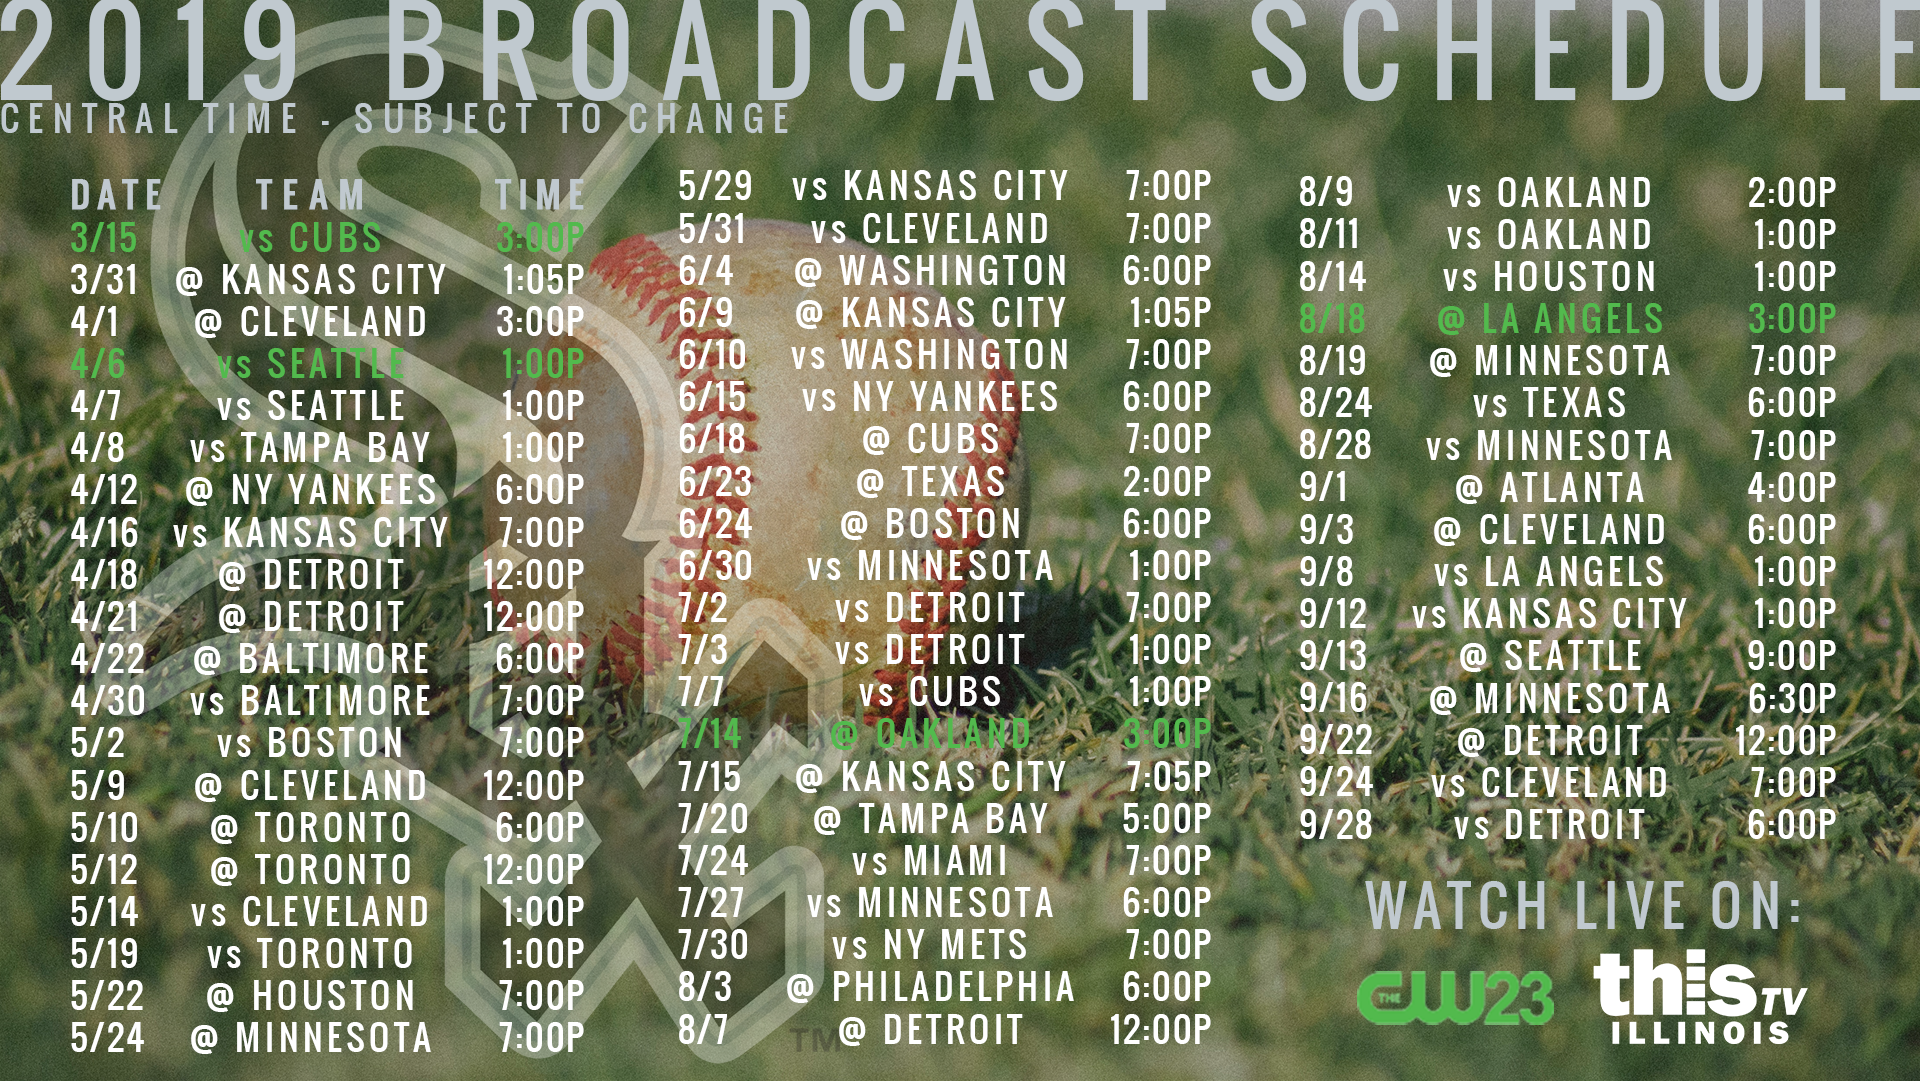 Watch live game broadcasts on CW23 and ThisTV in your local area.